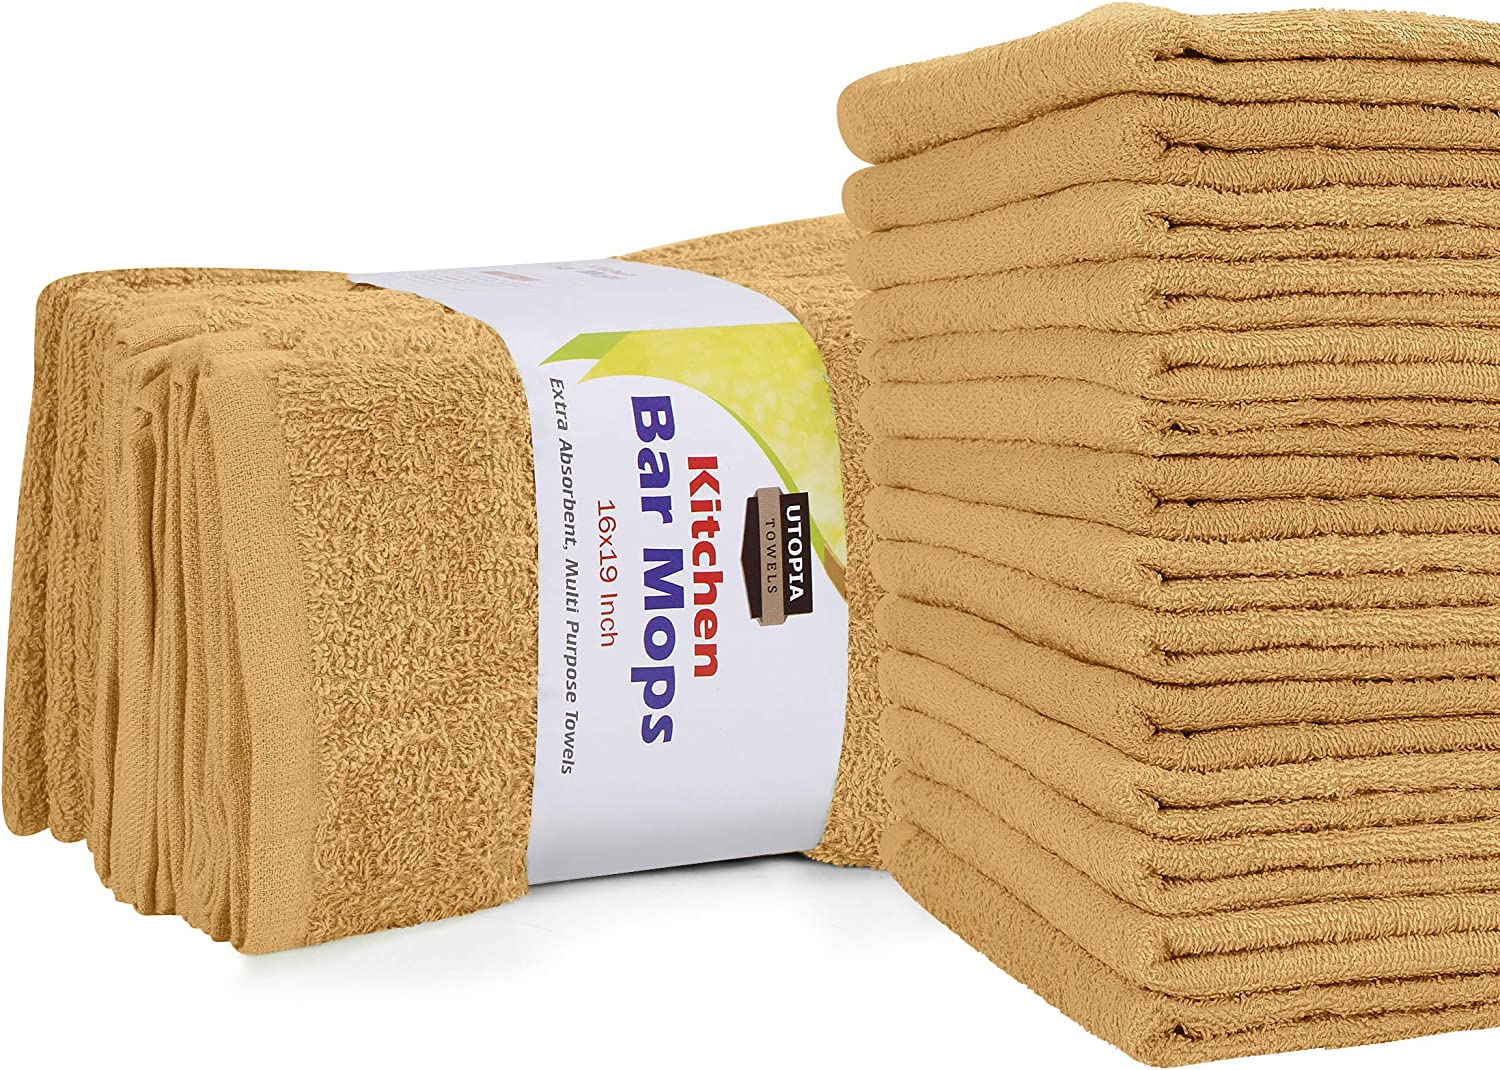 Utopia Towels Kitchen Bar Mops Towels, Pack of 12 Towels - 16 x 19 Inches, 100% Cotton Super Absorbent Beige Bar Towels, Multi-Purpose Cleaning Towels for Home and Kitchen Bars